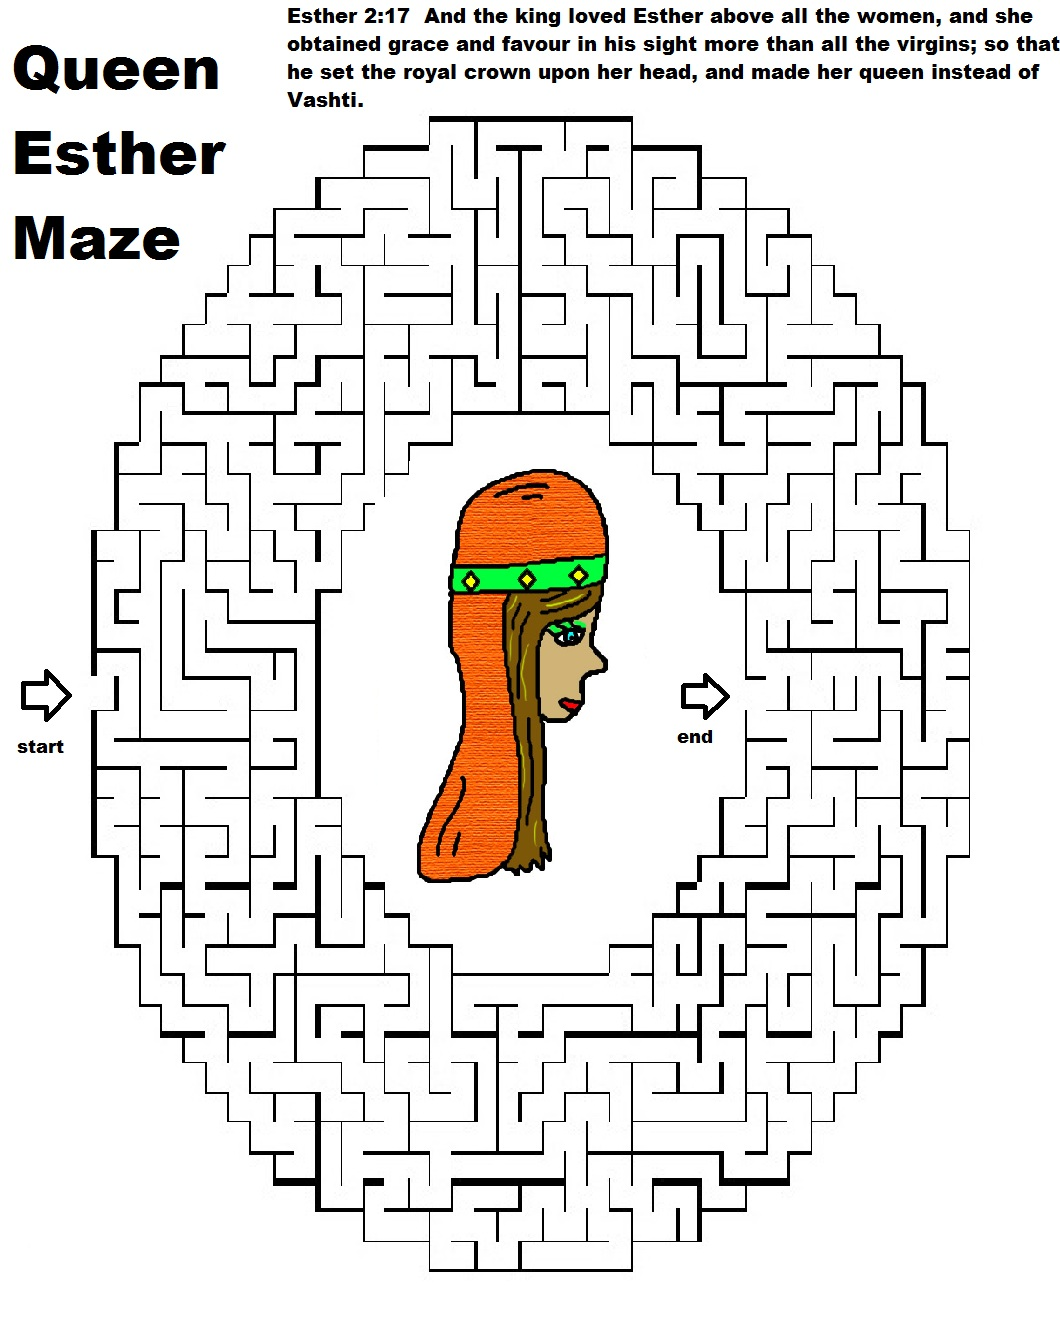 Church House Collection Blog: Queen Esther Maze